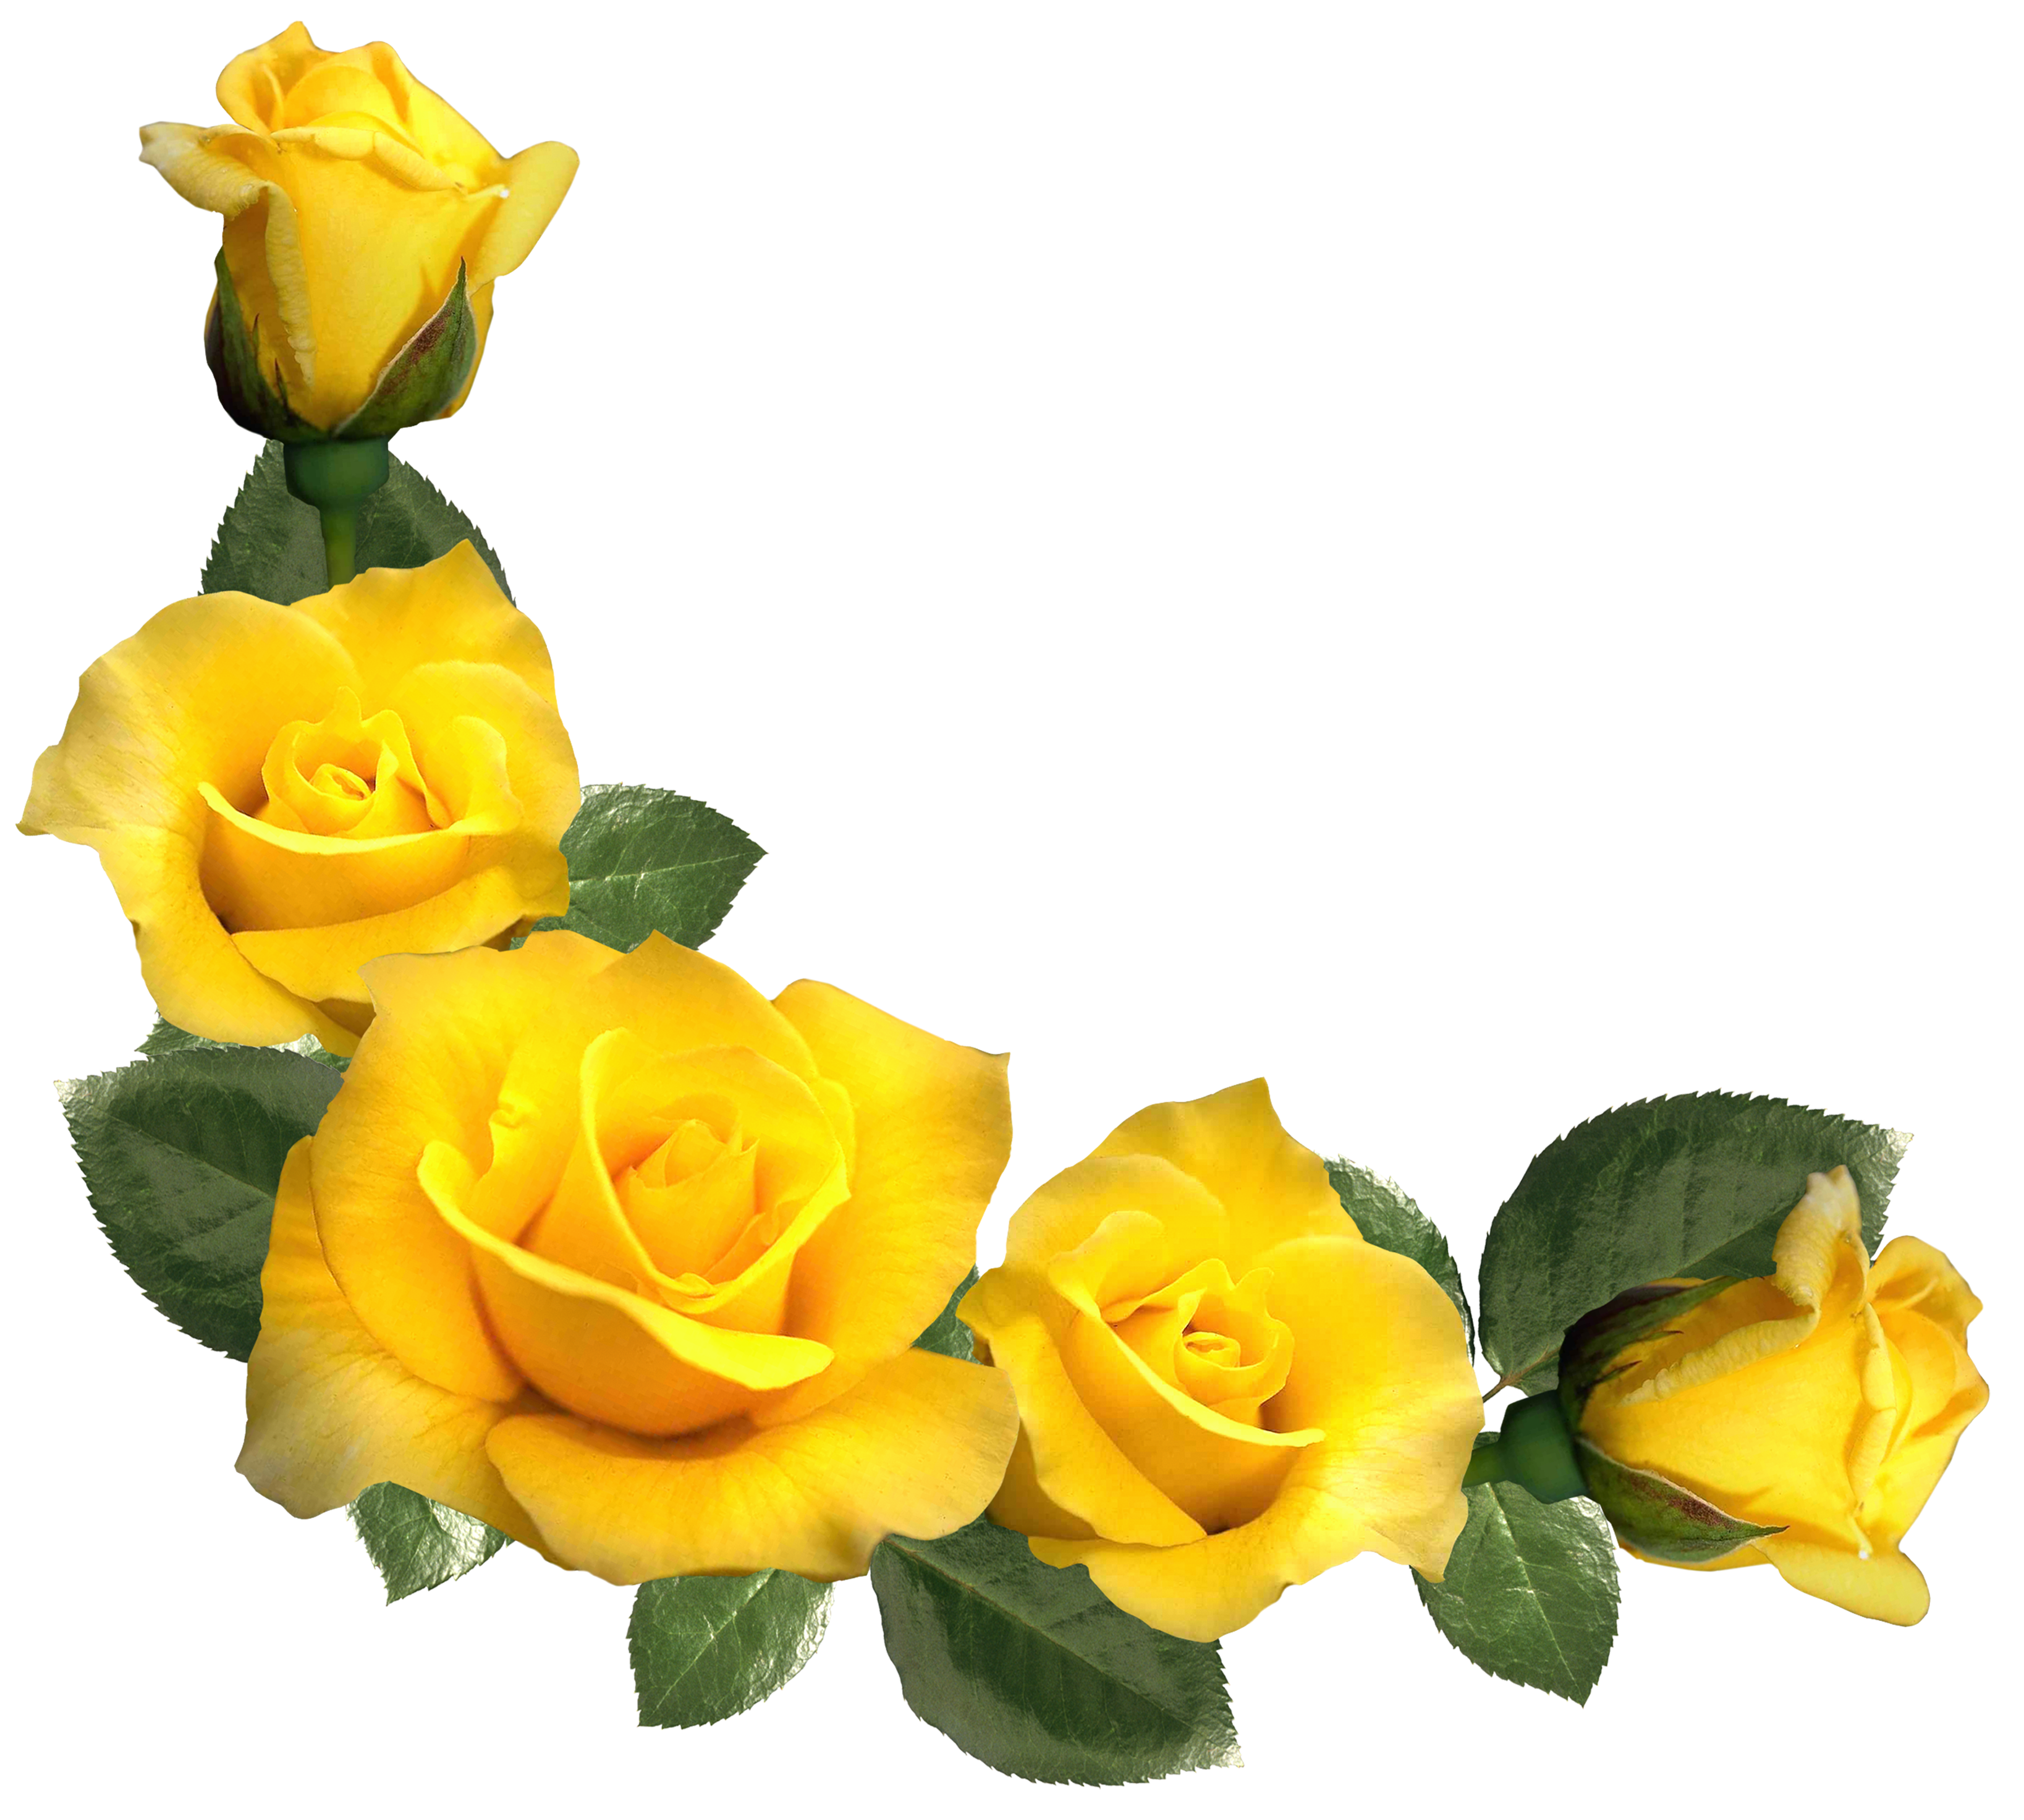 Pin By P J Wilcox On Rose Pics Pinterest Yellow Roses Yellow